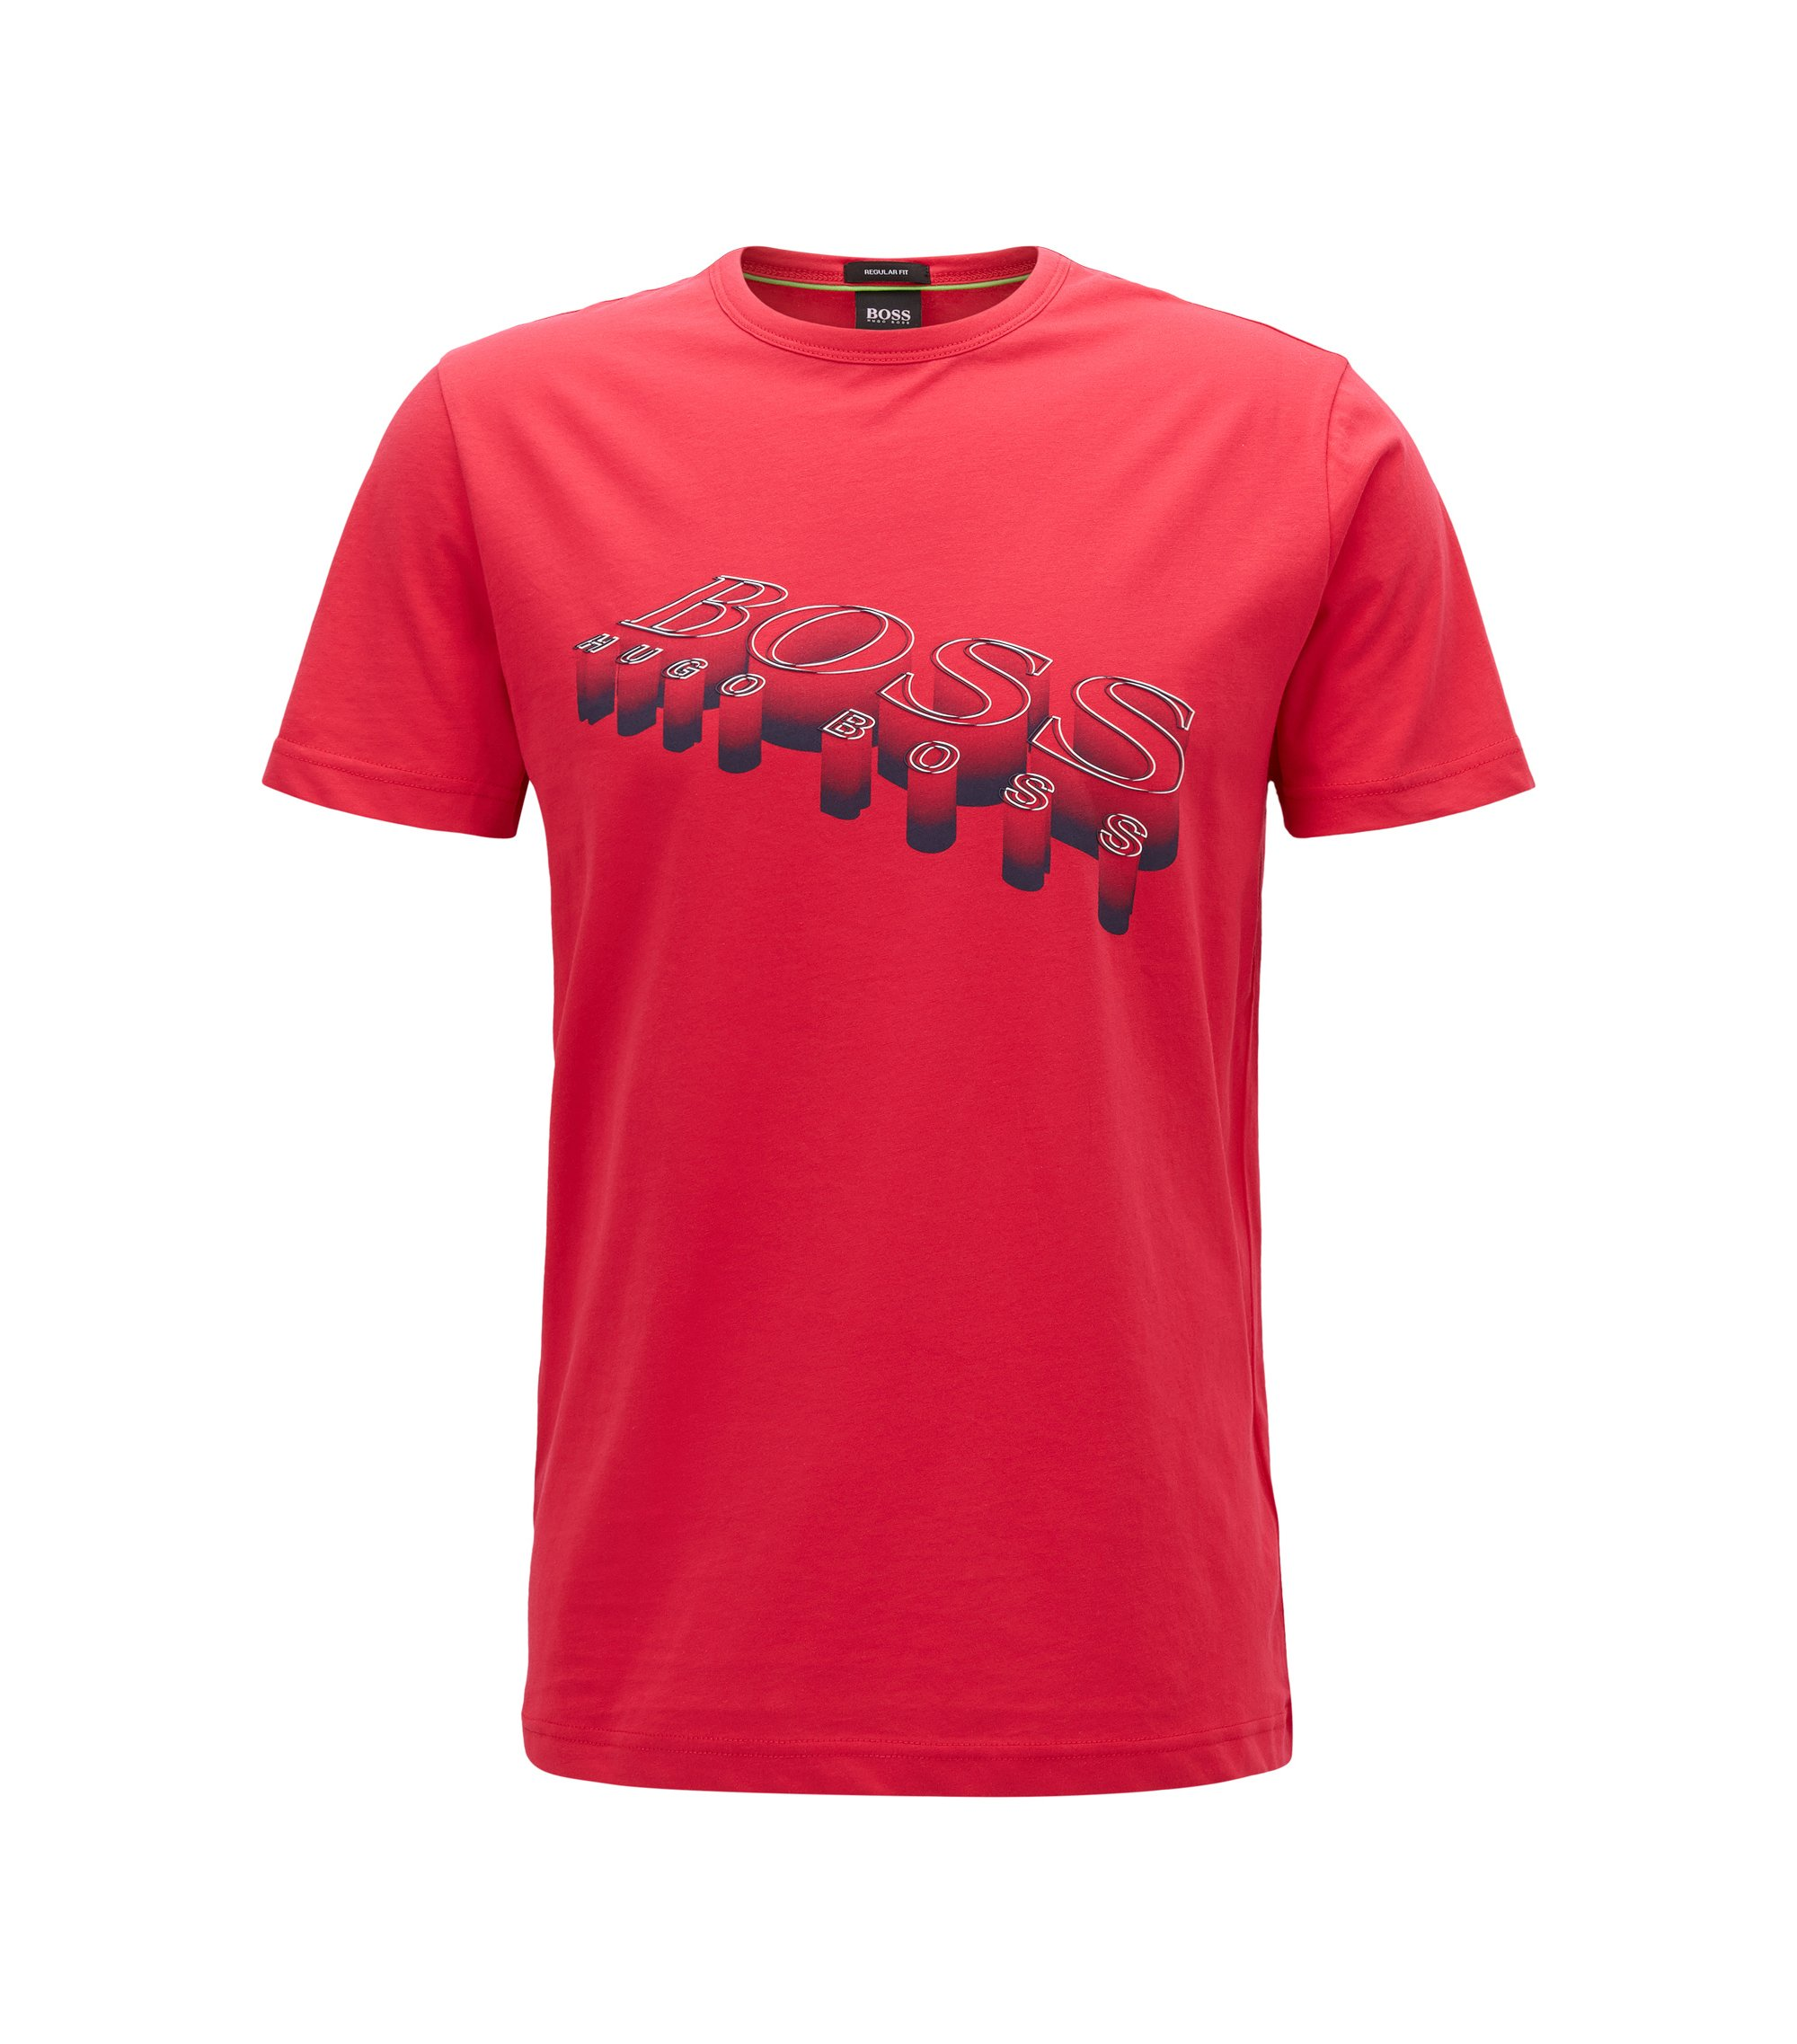 3D-logo T-shirt in soft cotton, Red